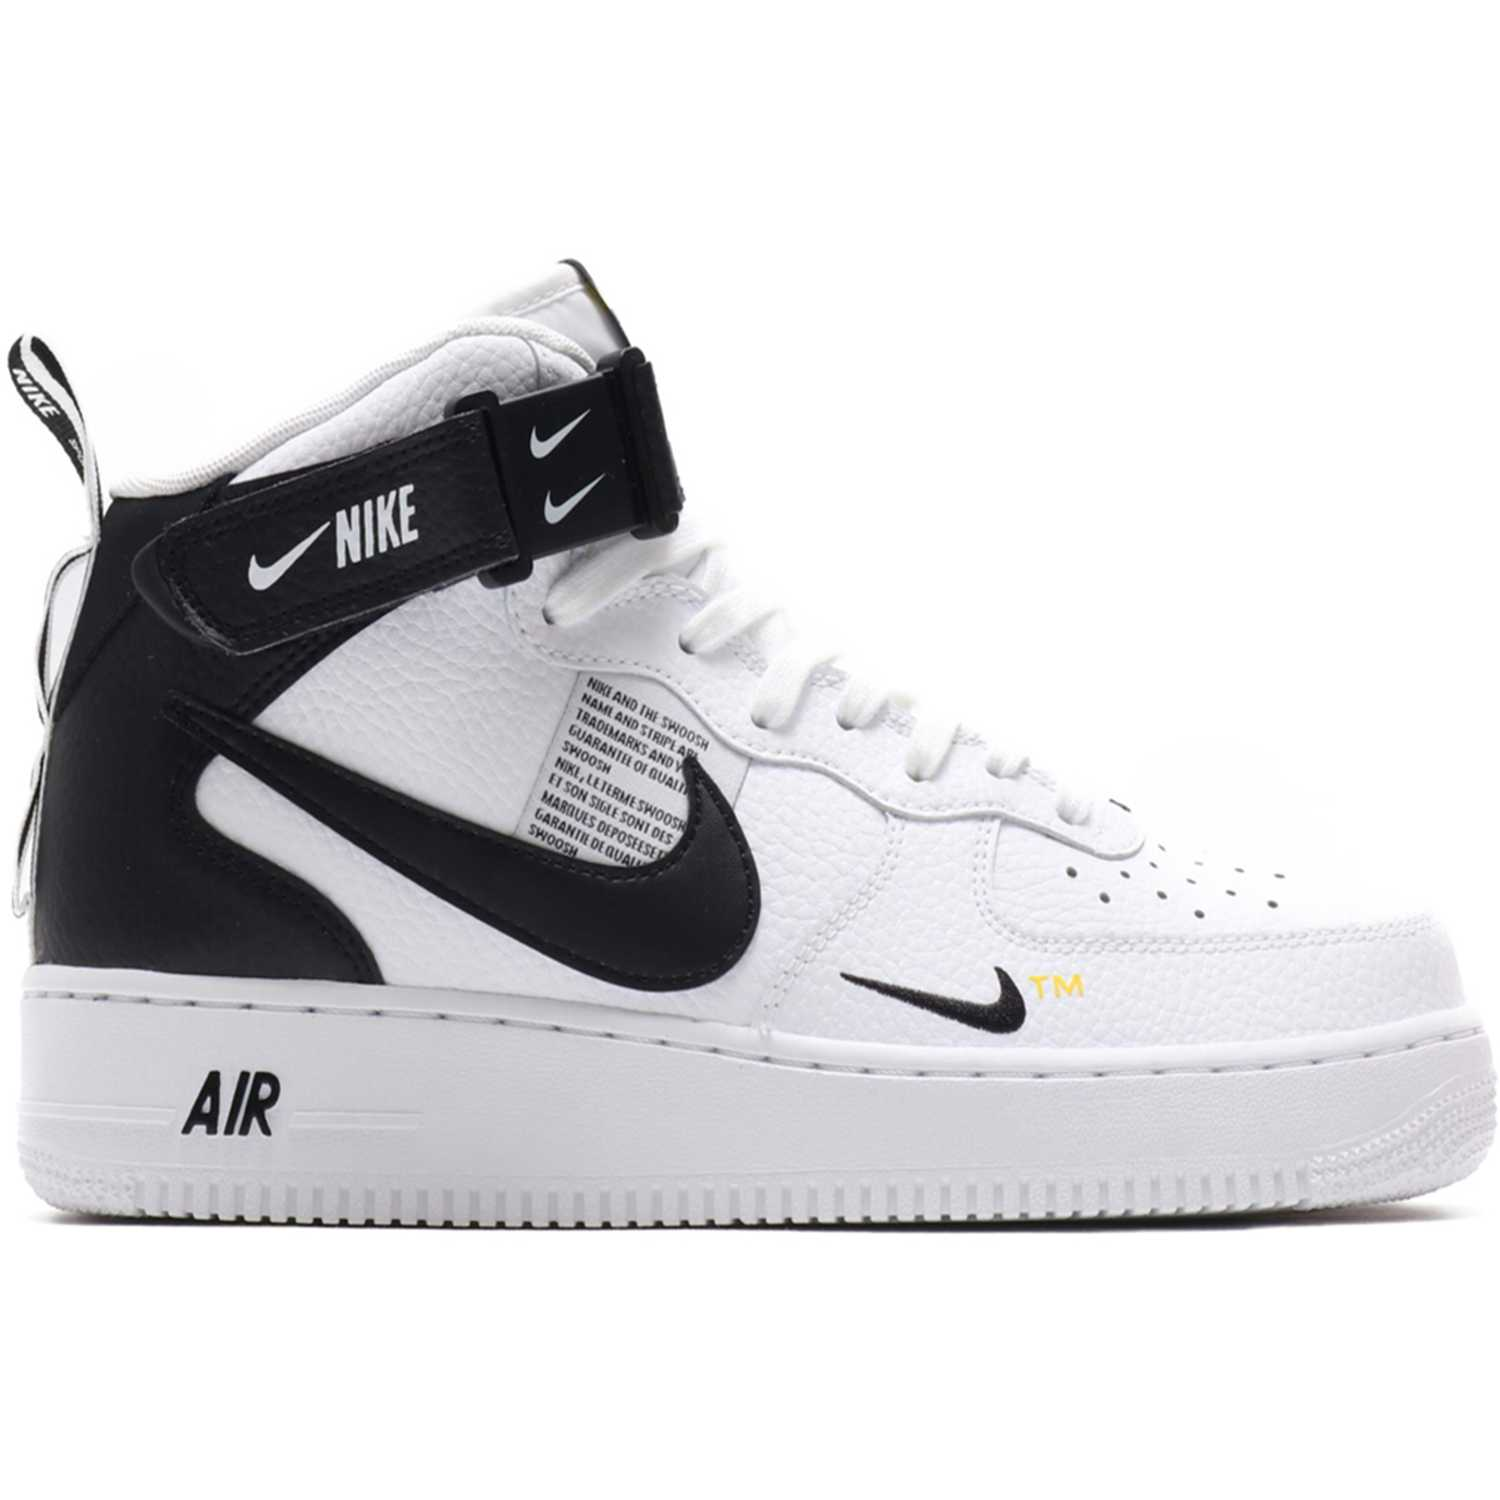 Ballerinas de Mujer Nike Blanco / negro air force 1 mid '07 lv8